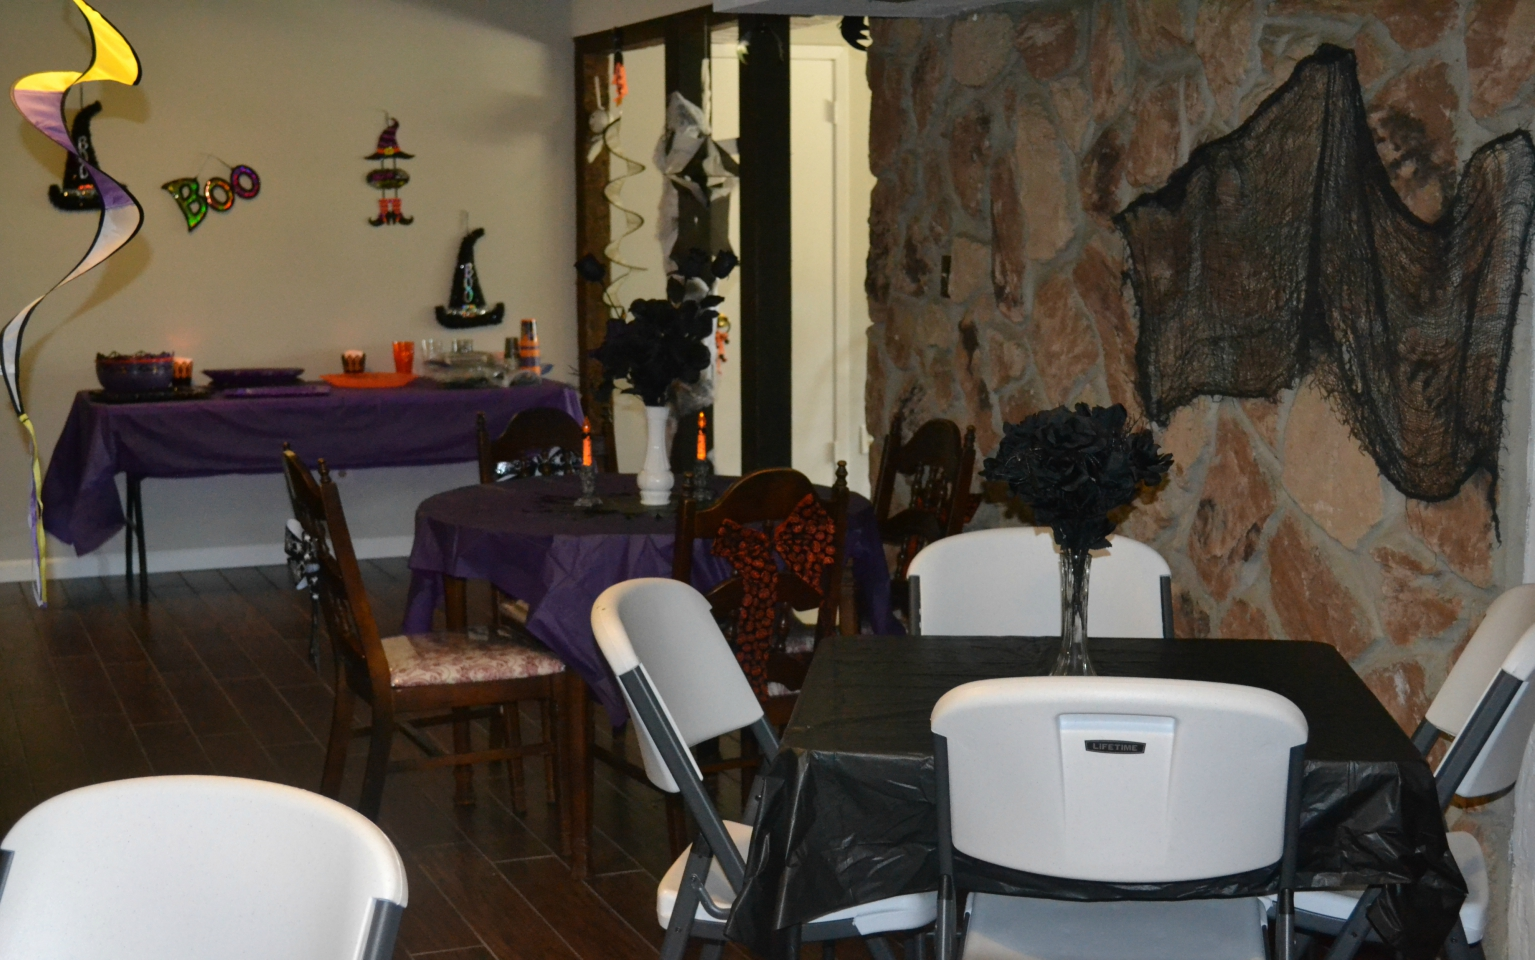 Halloween Party Tips,Tricks and Treats for a fun filled Halloween for kids of all ages.